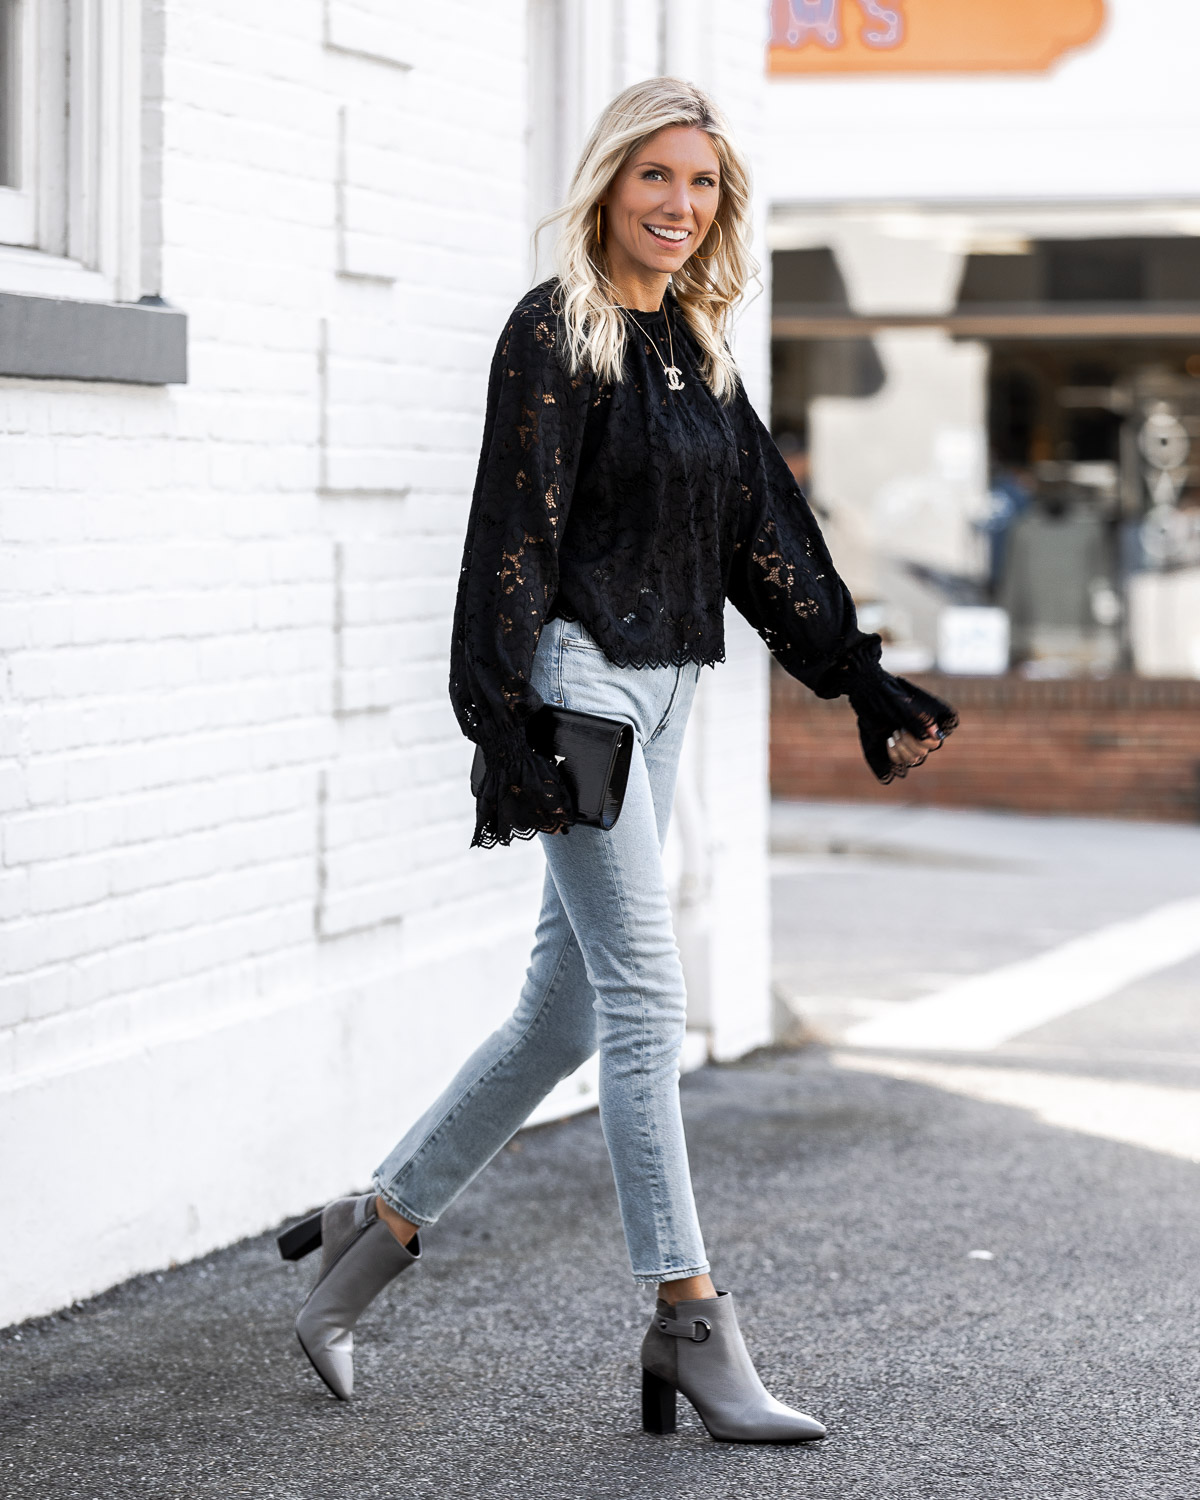 aerosoles gray booties and comfy light jeans The Glamorous Gal